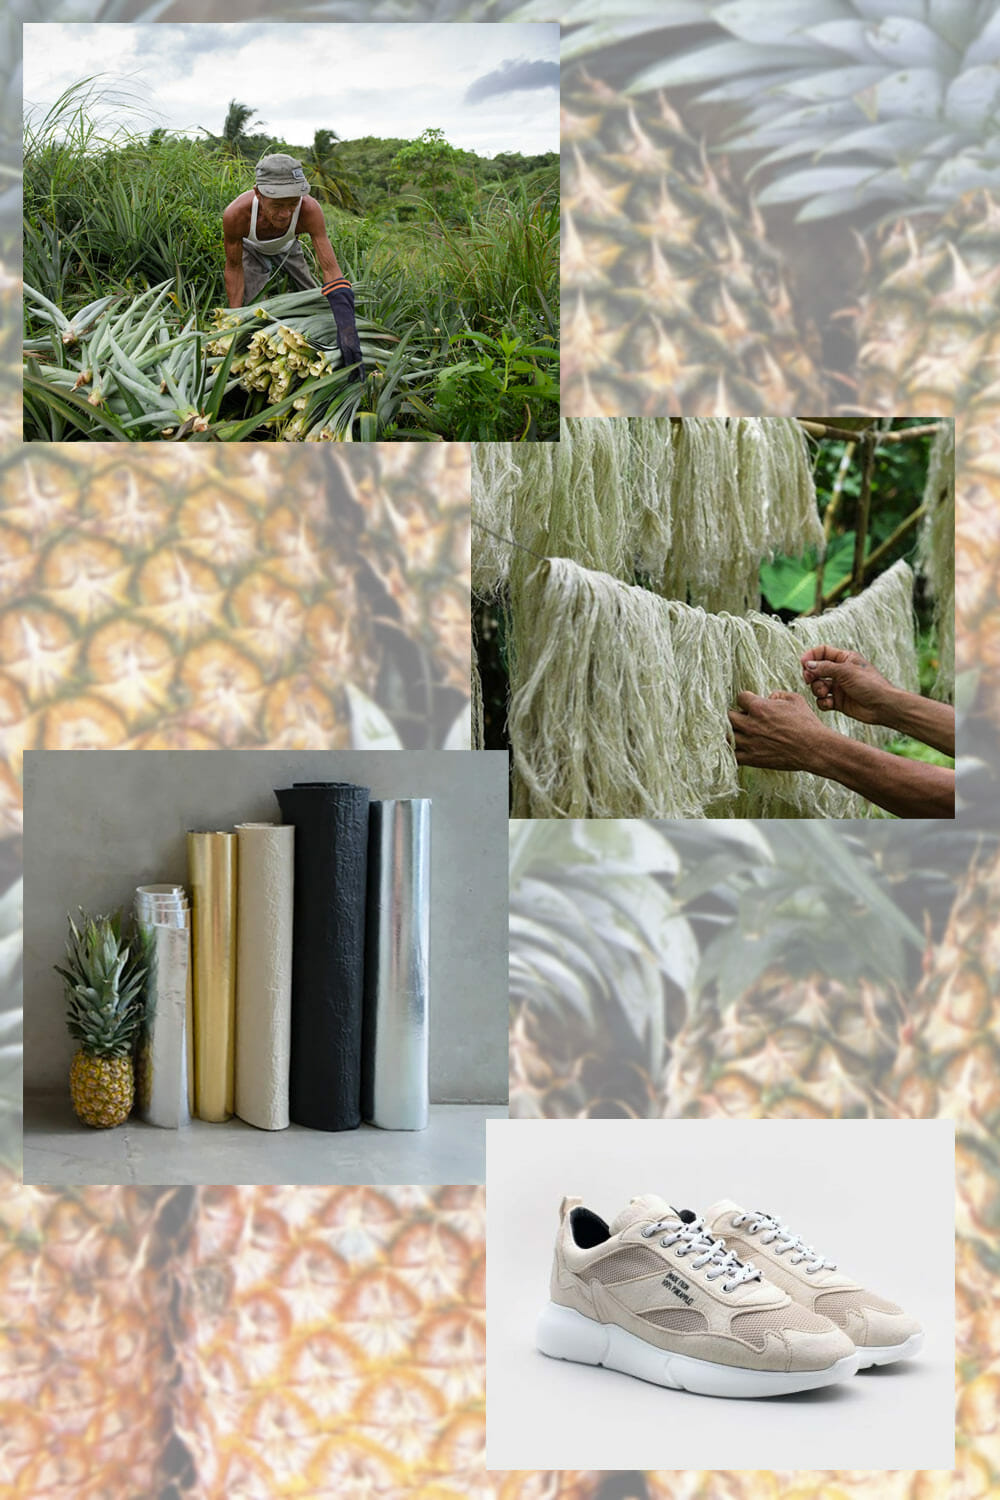 Pineapple leather making process